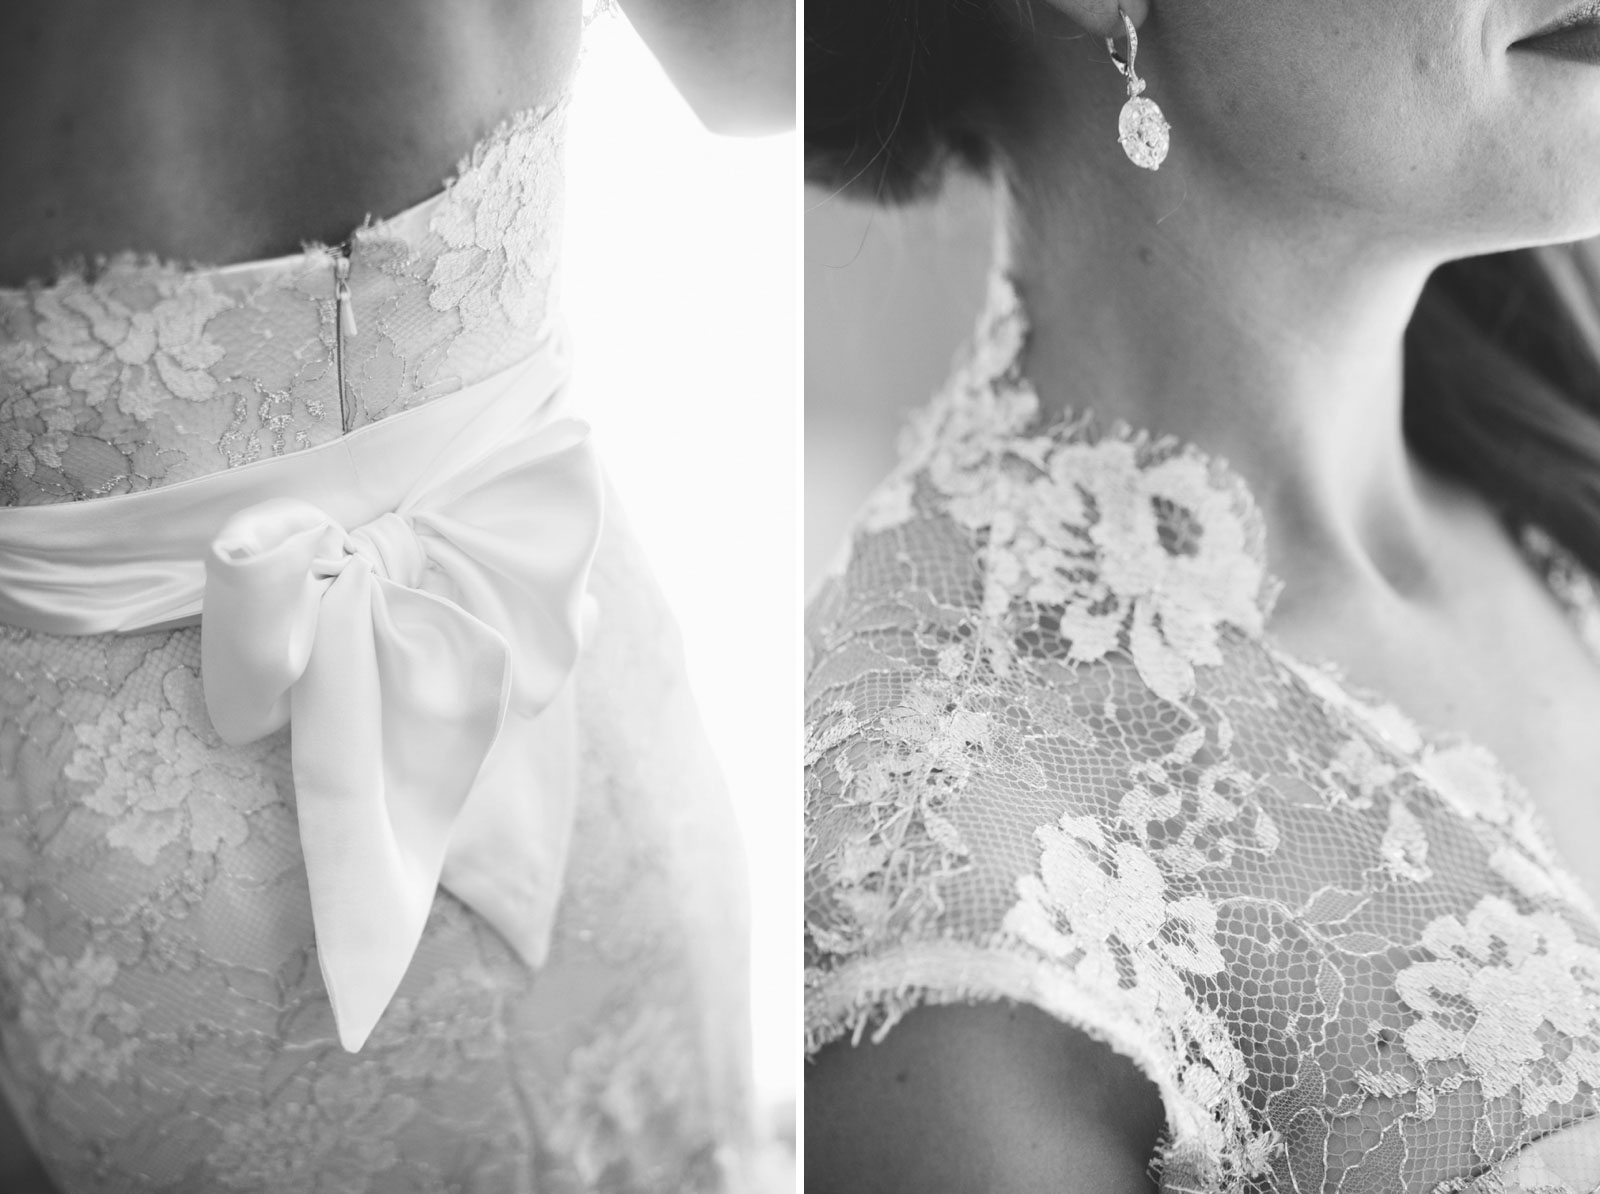 black and white details of bride's lace dress with satin belt and and diamond earrings